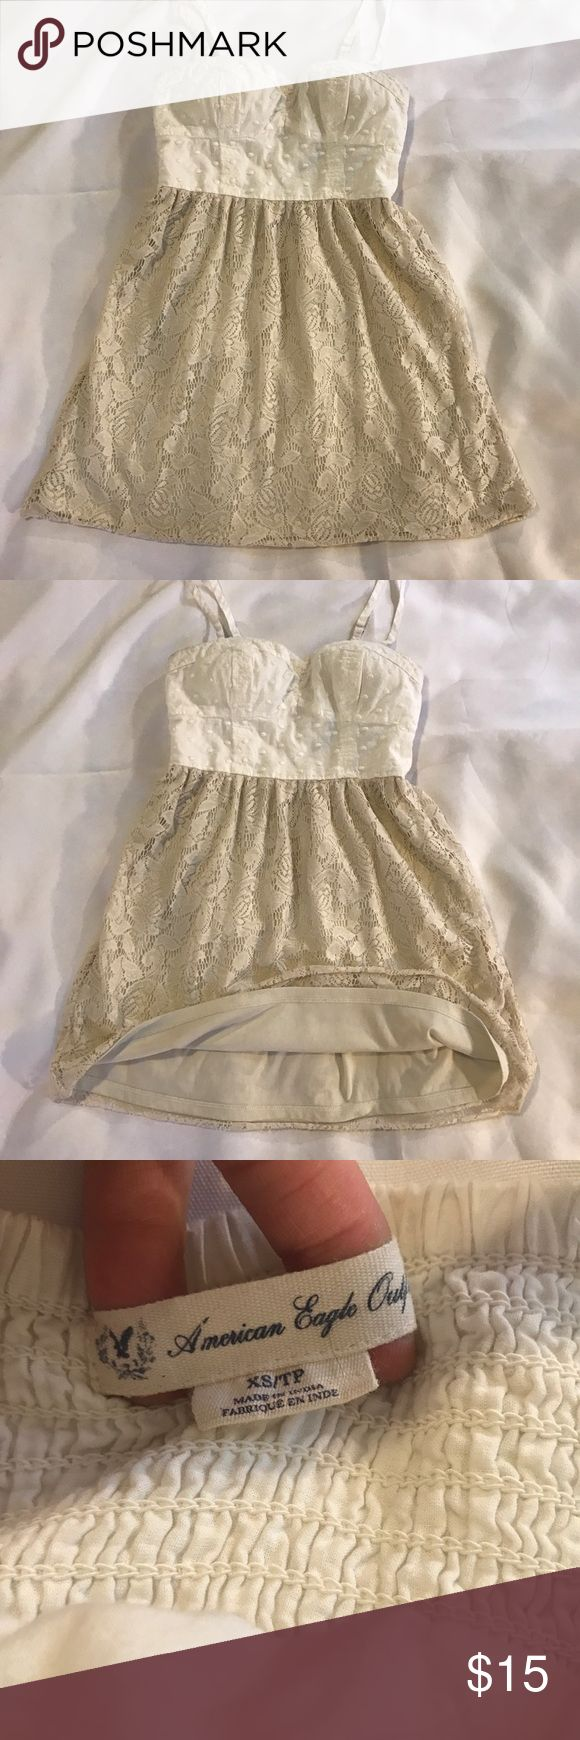 "American Eagle lace sundress American Eagle Outfitters beautiful cream lace spaghetti strap sundress in women's XS. Top to bottom length is 25"", lined skirt. In excellent used condition with no flaws! Clean and ready to ship. Check out my other listings for a bundle discount! American Eagle Outfitters Dresses Mini"